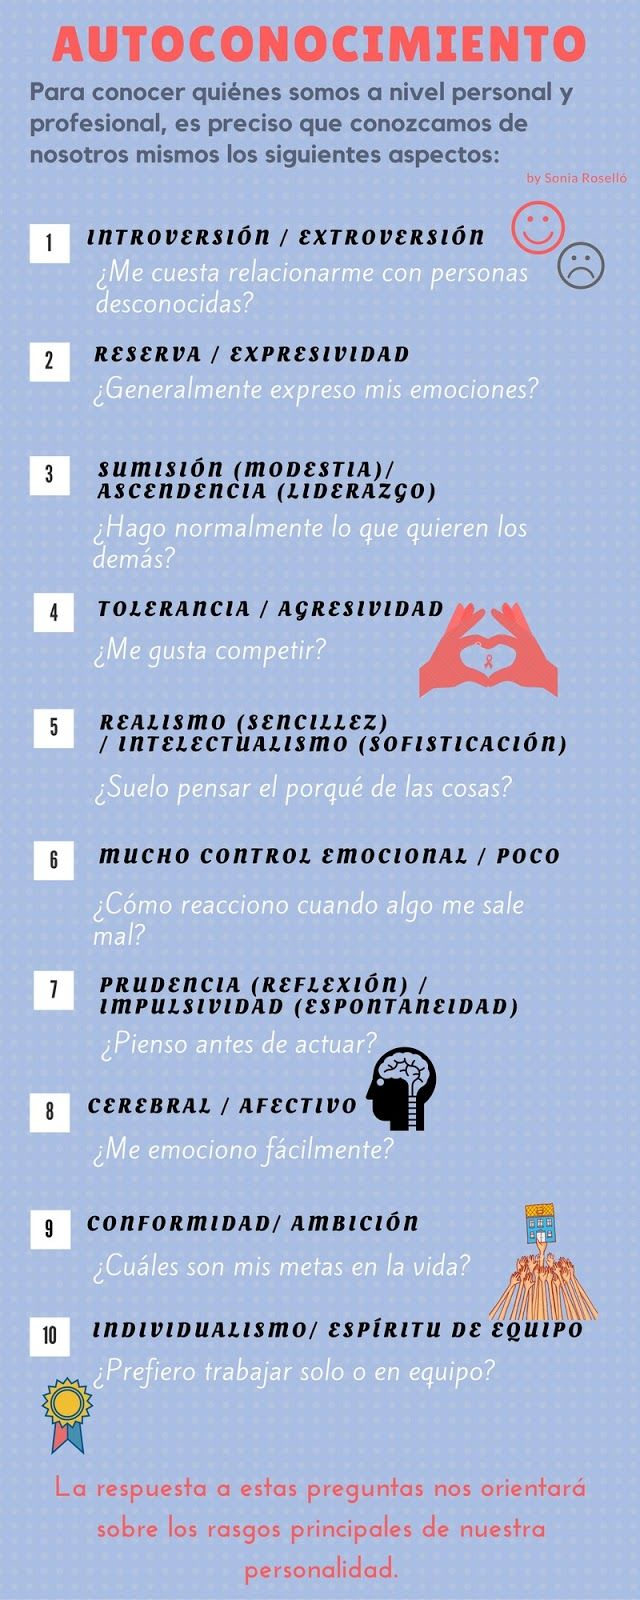 224 best psicologia images on Pinterest | Spanish, Learning and ...